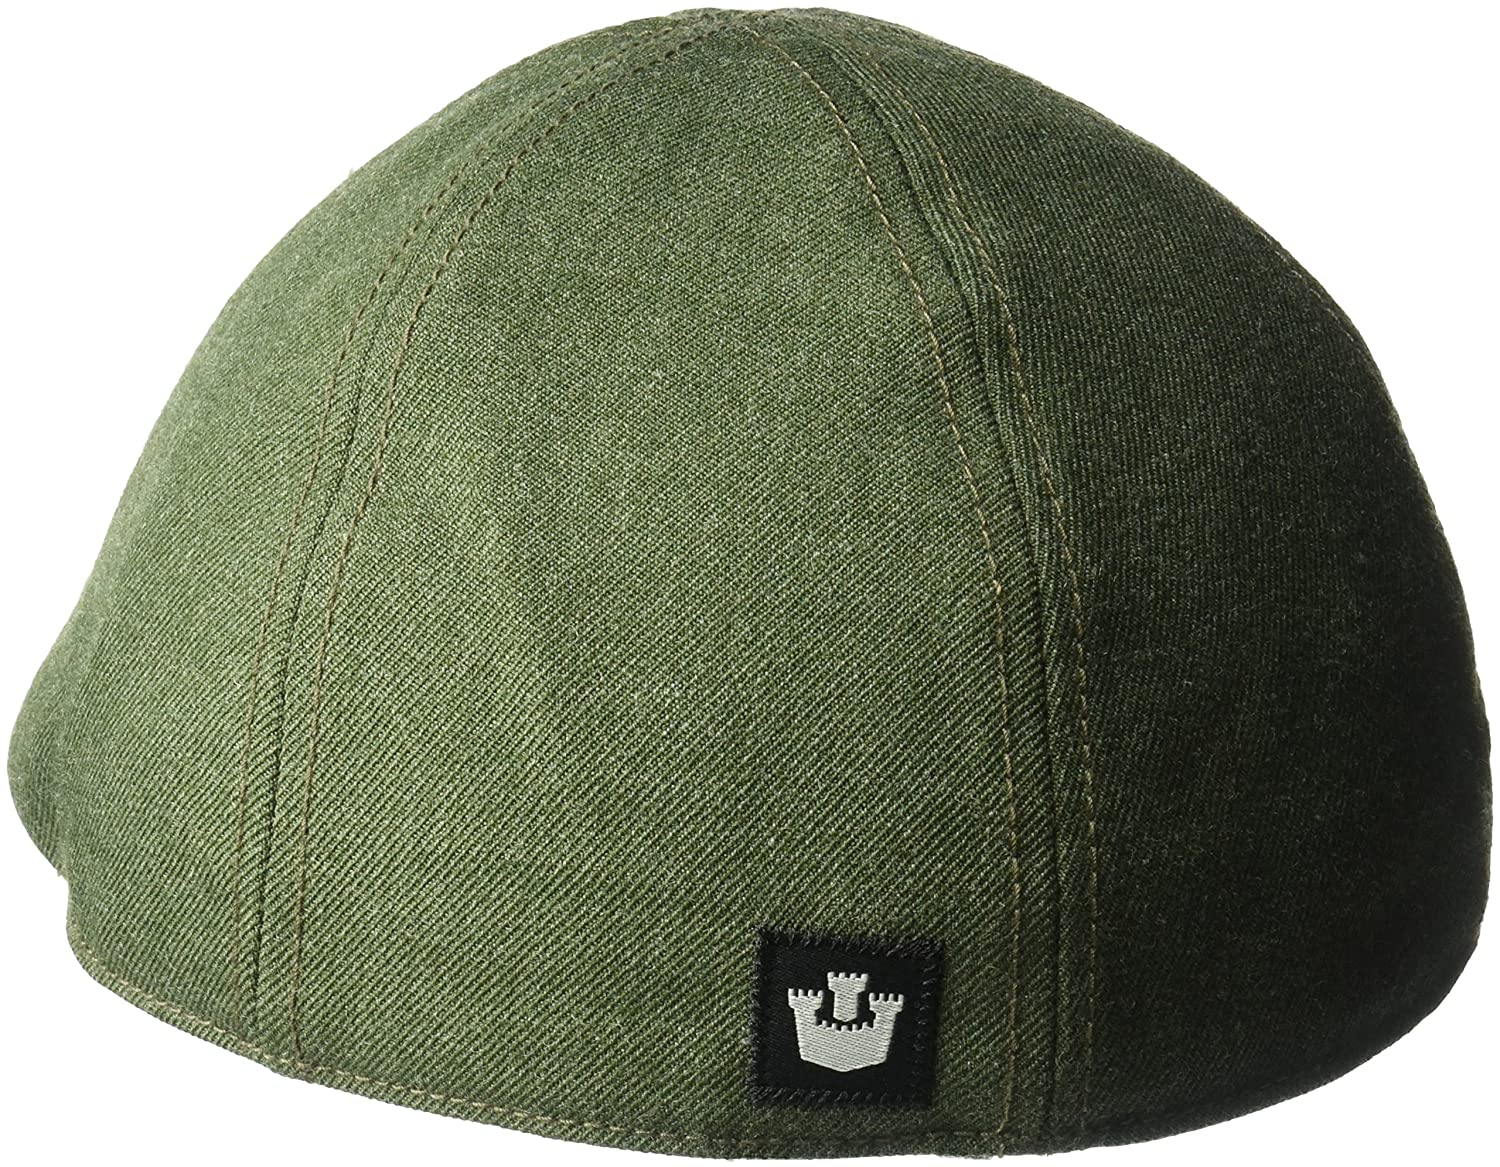 Goorin Bros. Mens Old Town Wool Blend Ivy Newsboy Hat at Amazon Mens Clothing store: